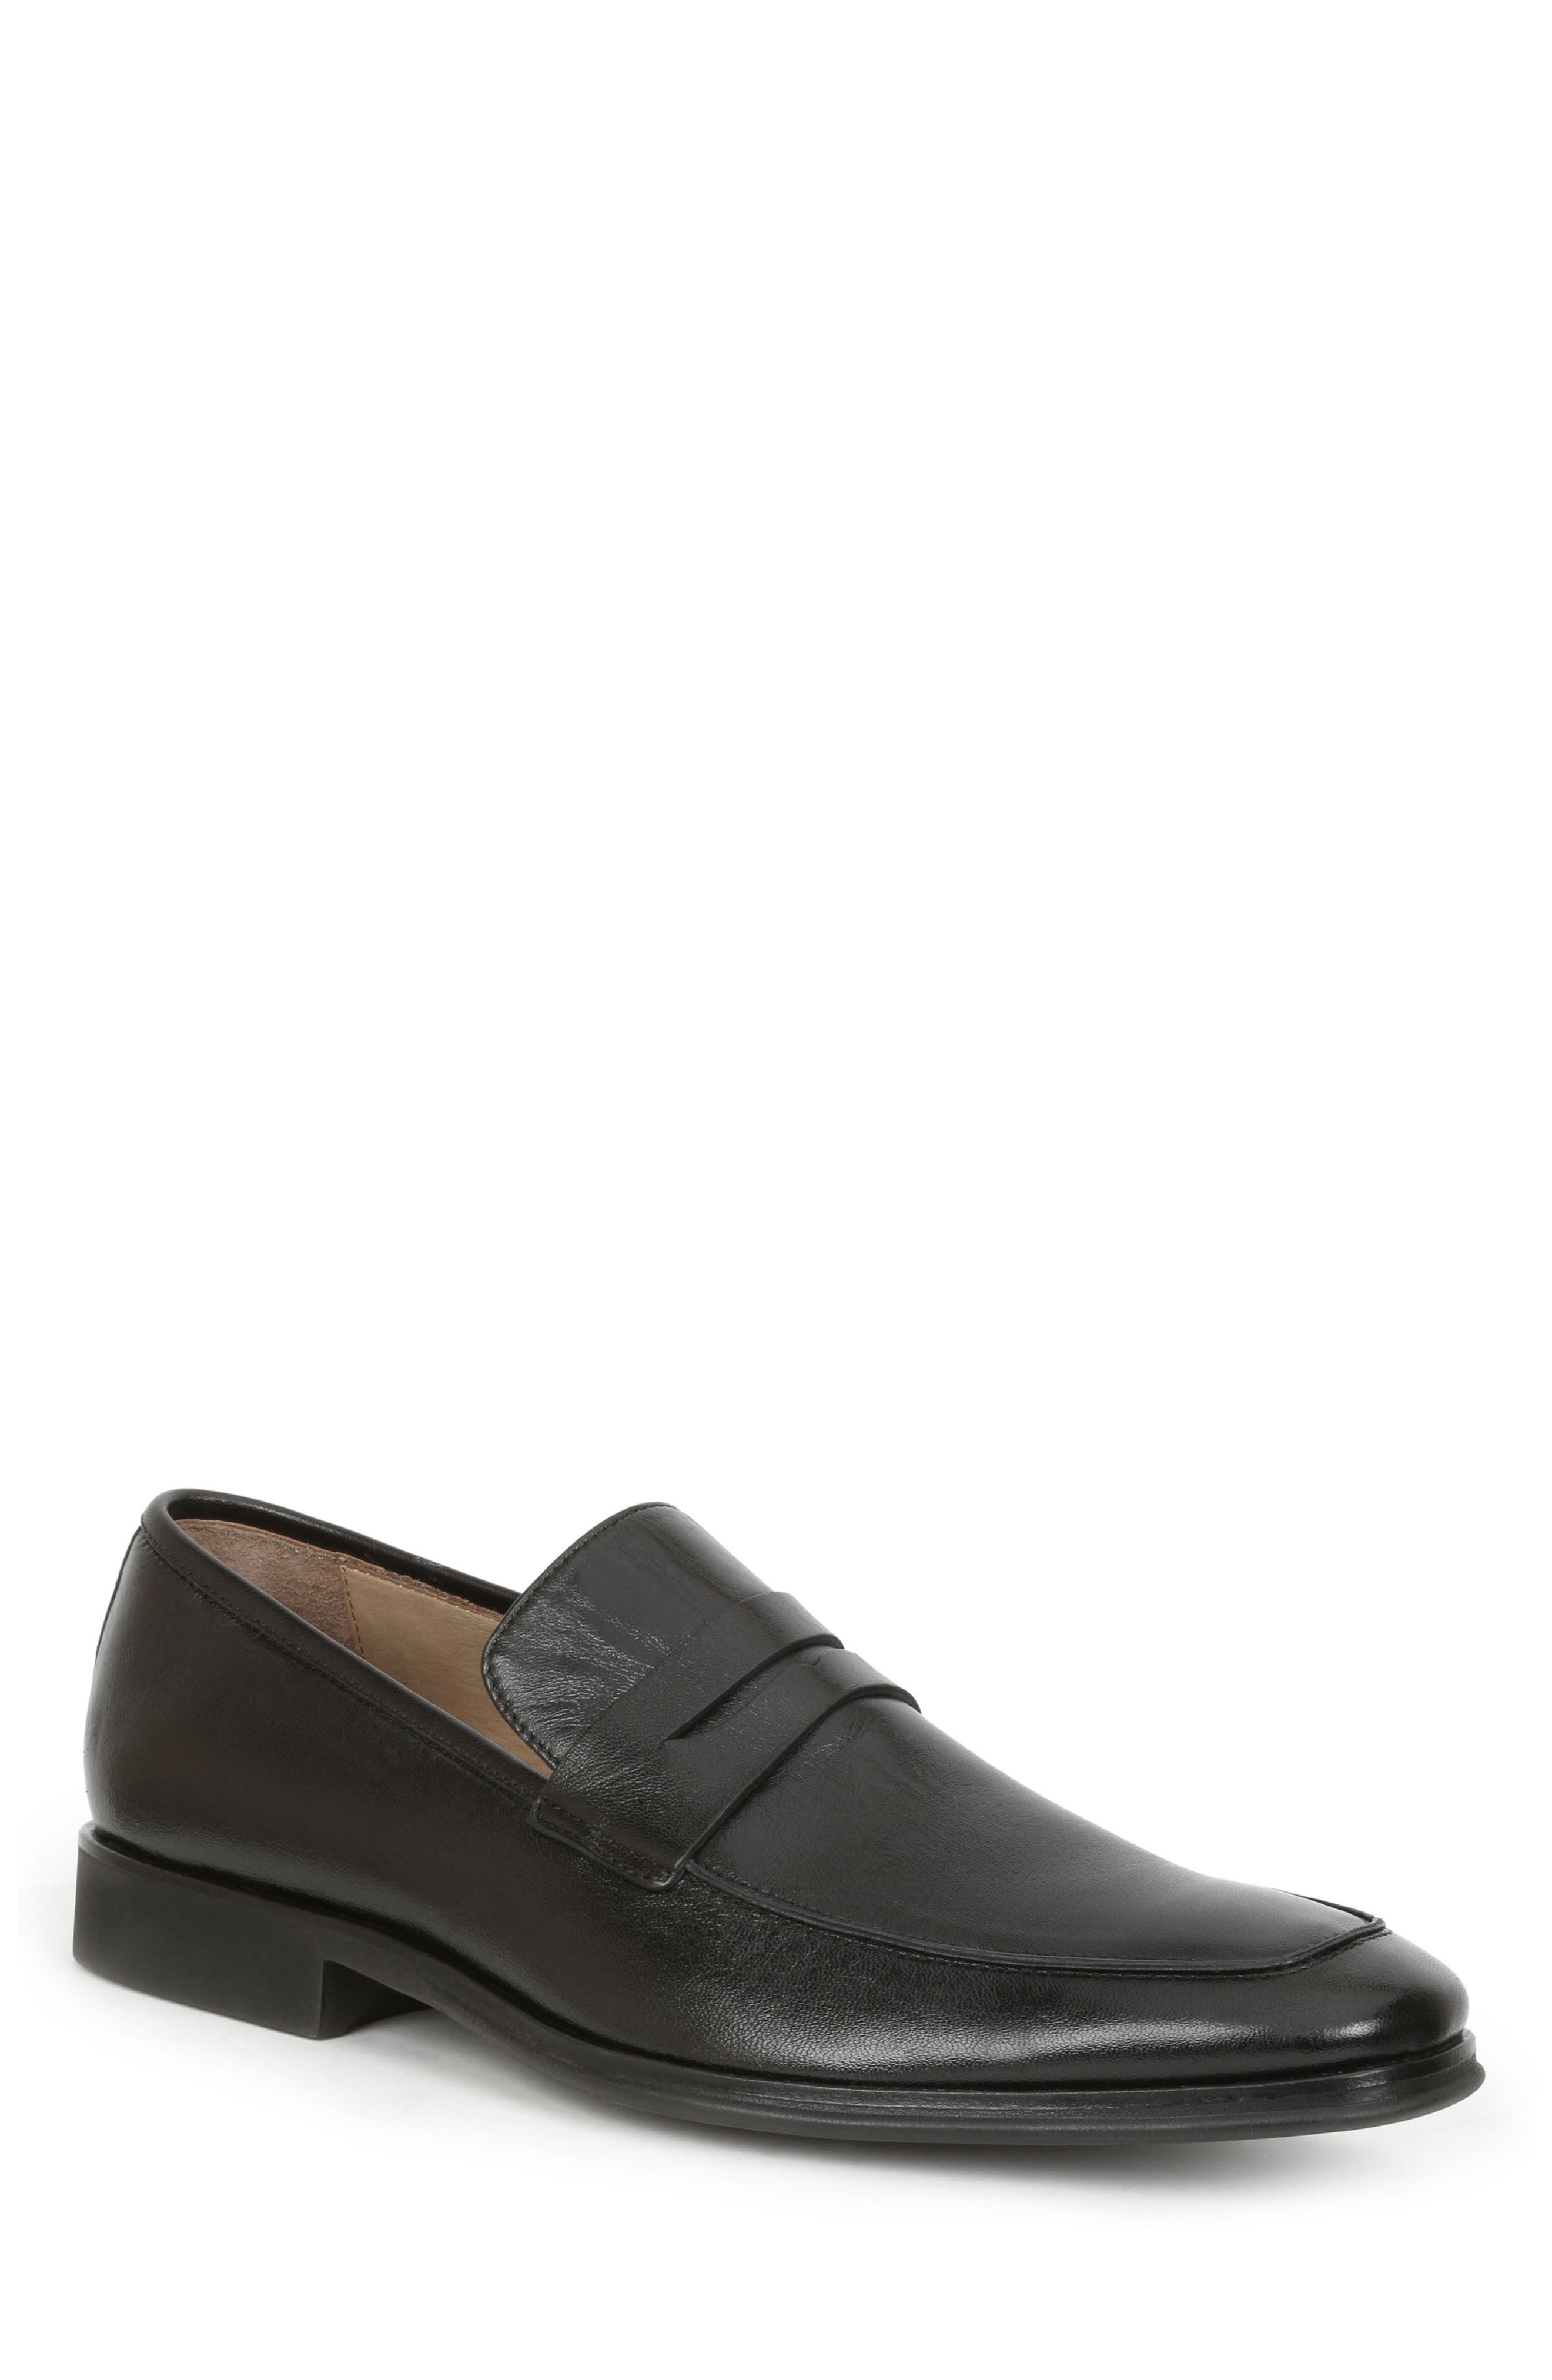 Ragusa Penny Loafer,                             Main thumbnail 1, color,